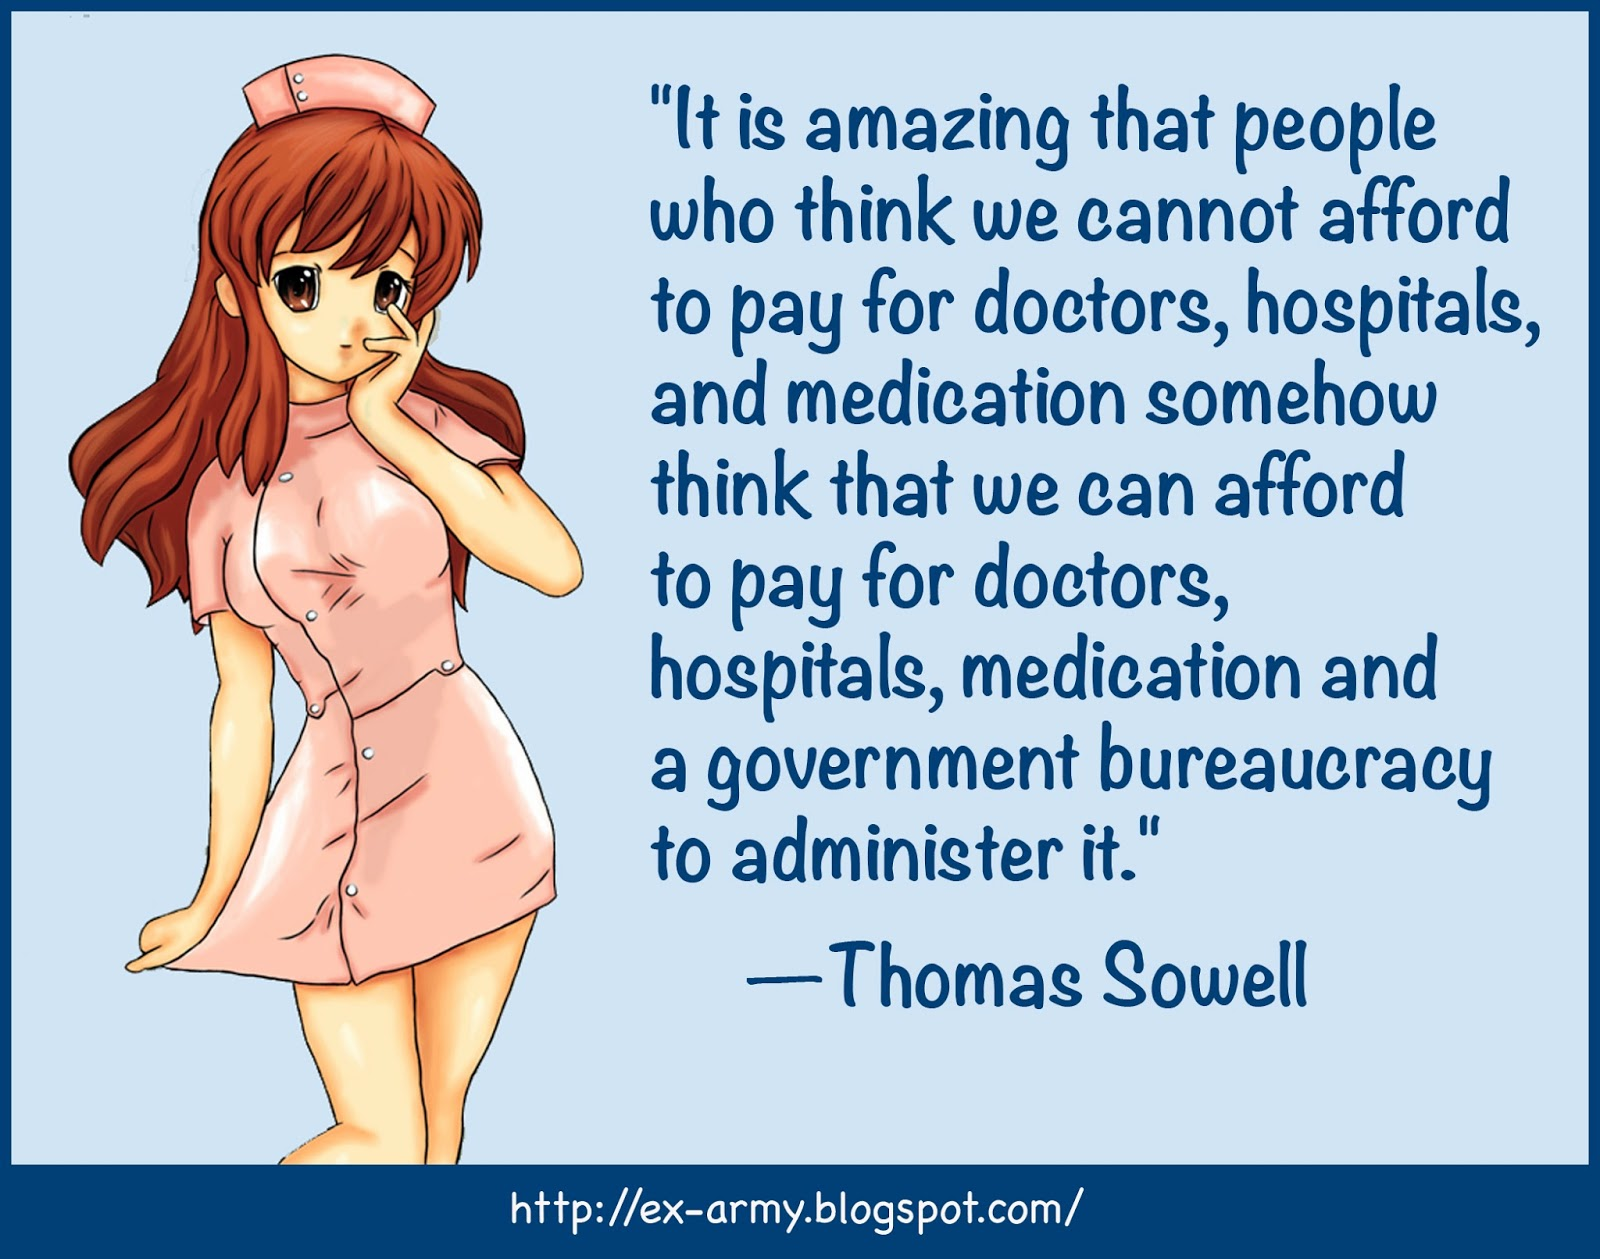 ex army libertarian nationalist  thomas sowell